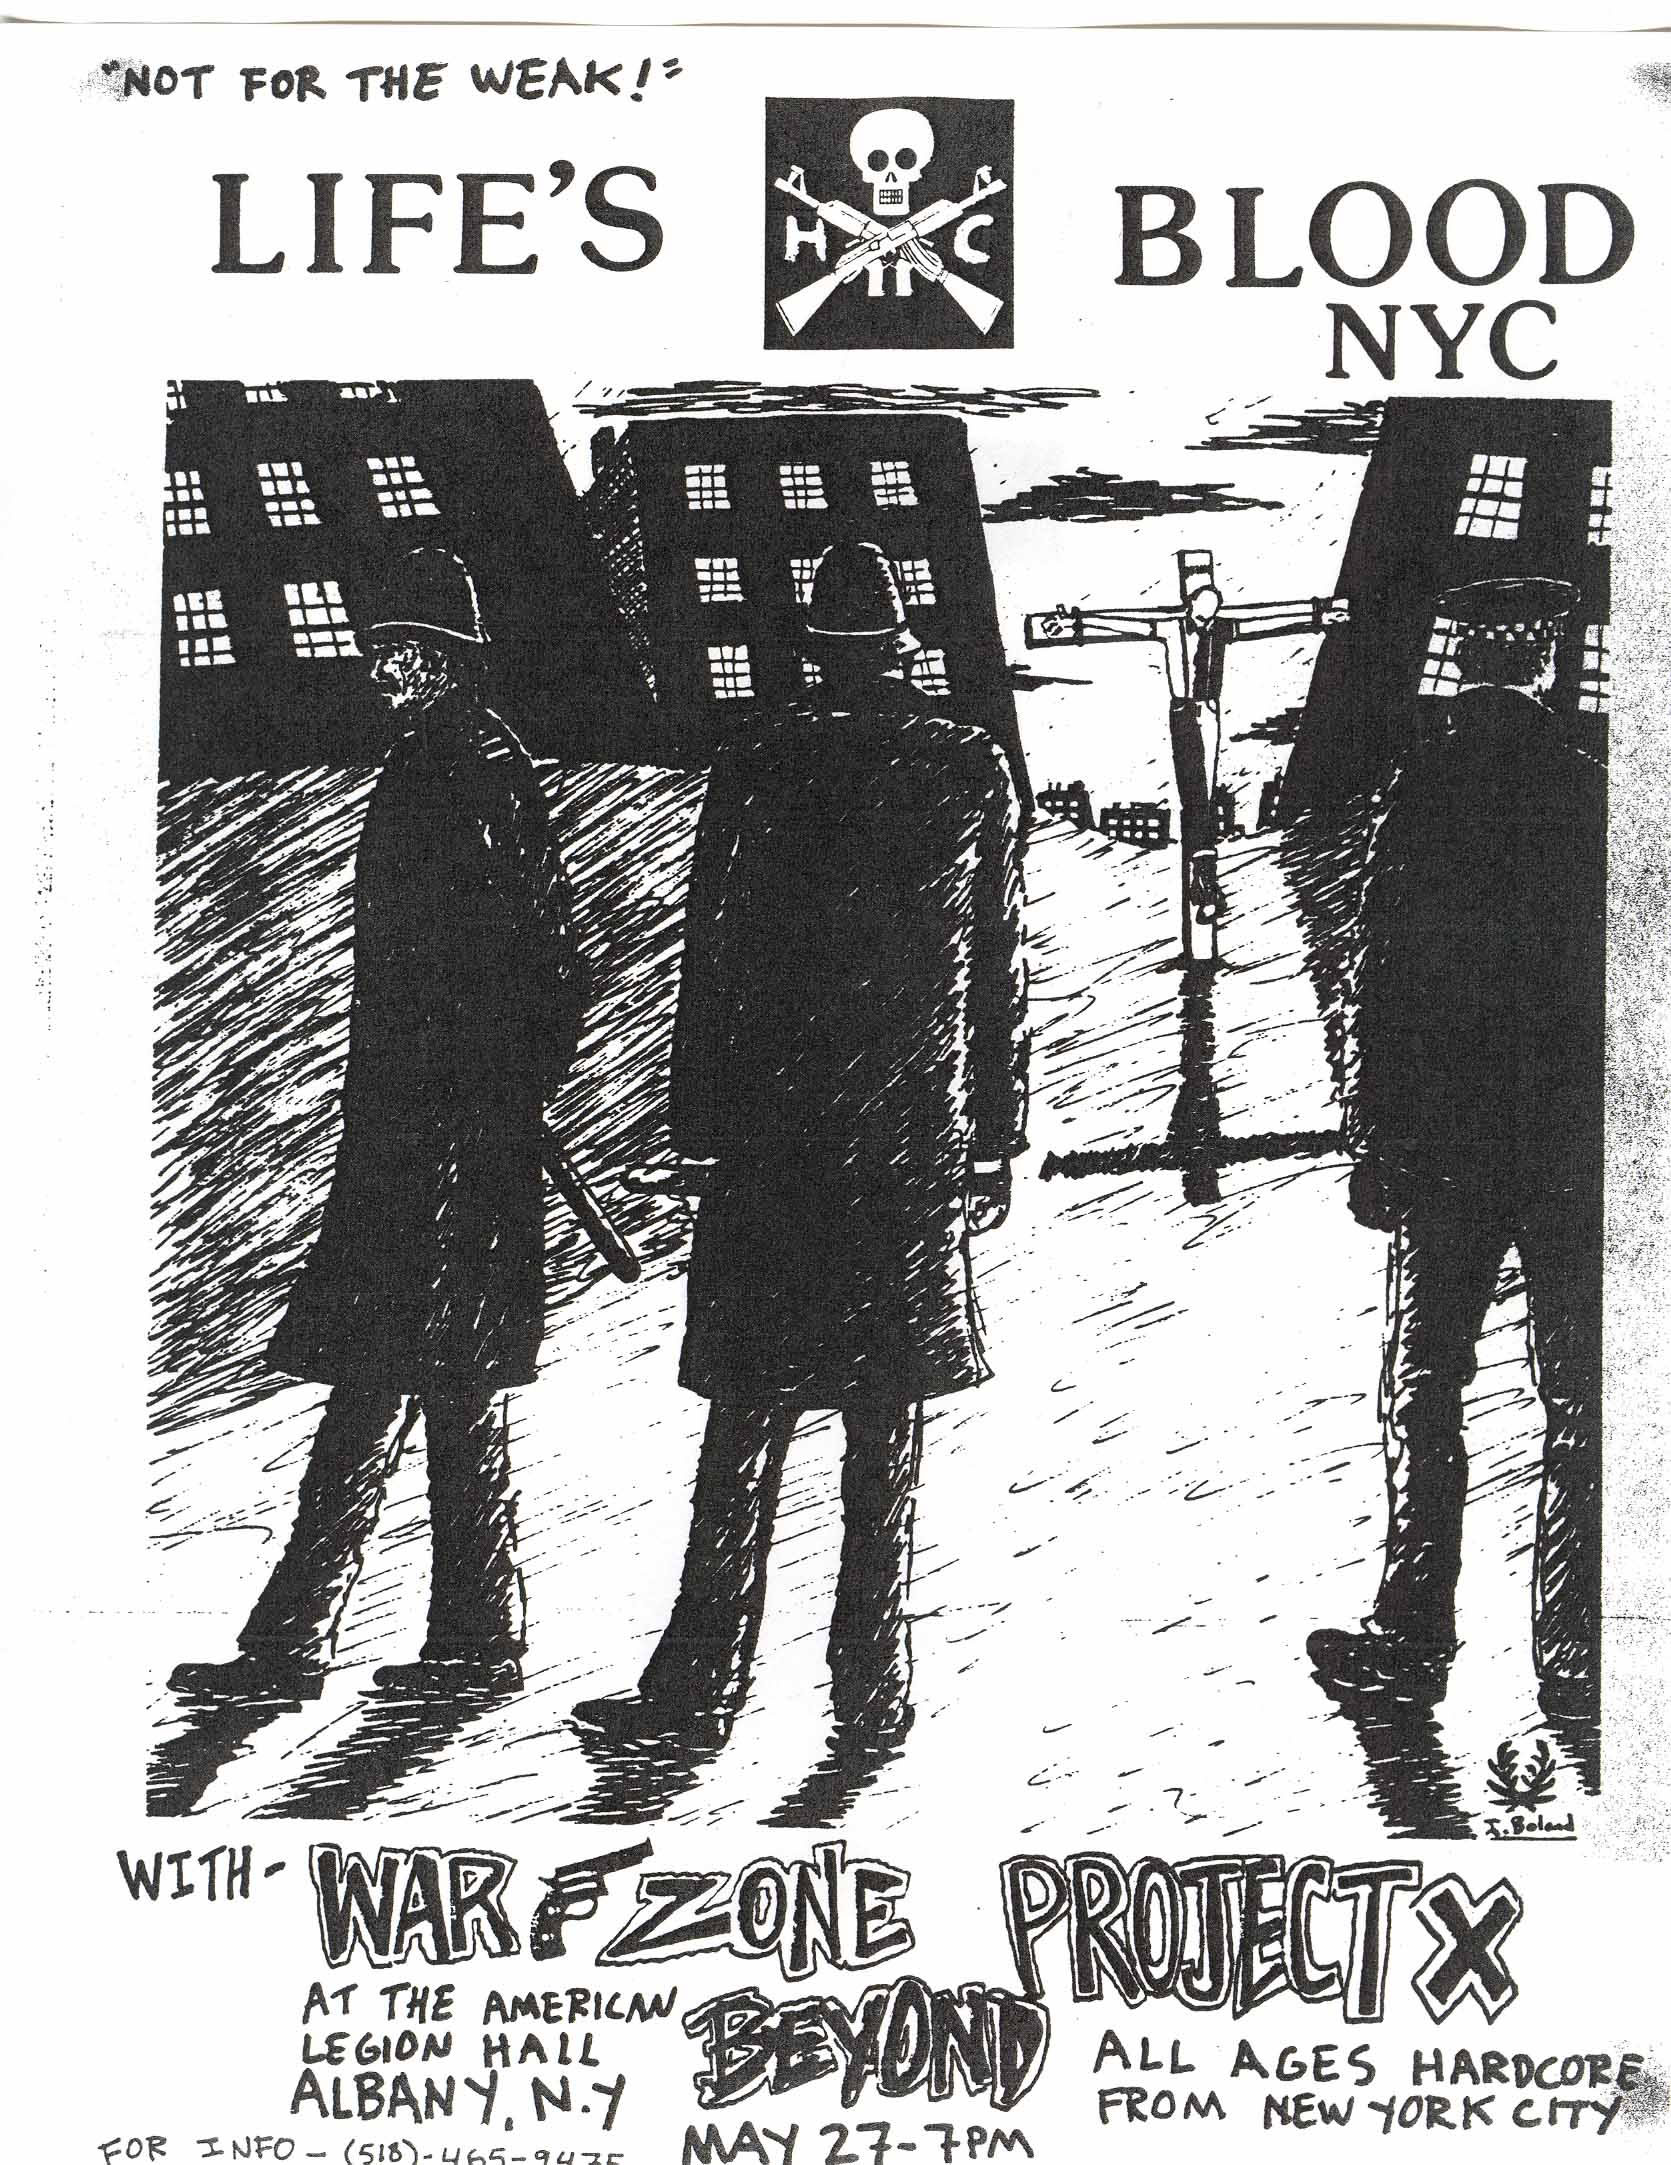 Life's Blood-War Zone-Beyond-Project X @ American Legion Hal New York City NY 5-27-88